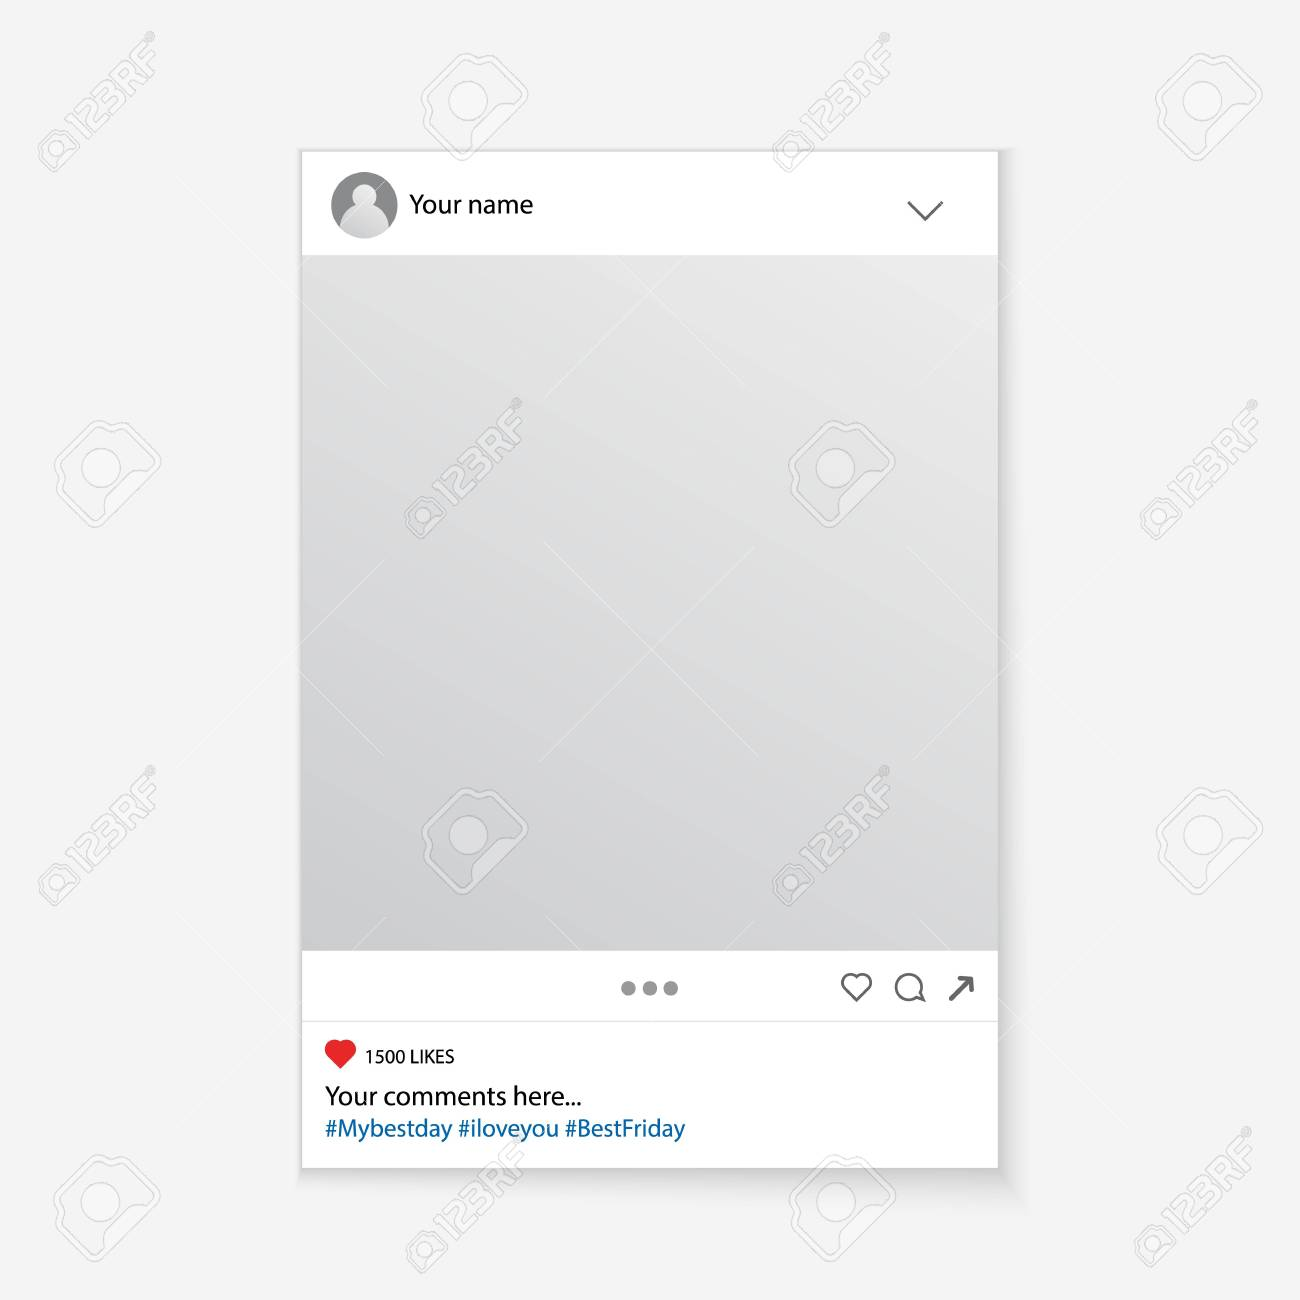 Creative vector illustration of social media photo prop frame isolated on background. Art design mockup. Abstract concept graphic element for your post - 91593400